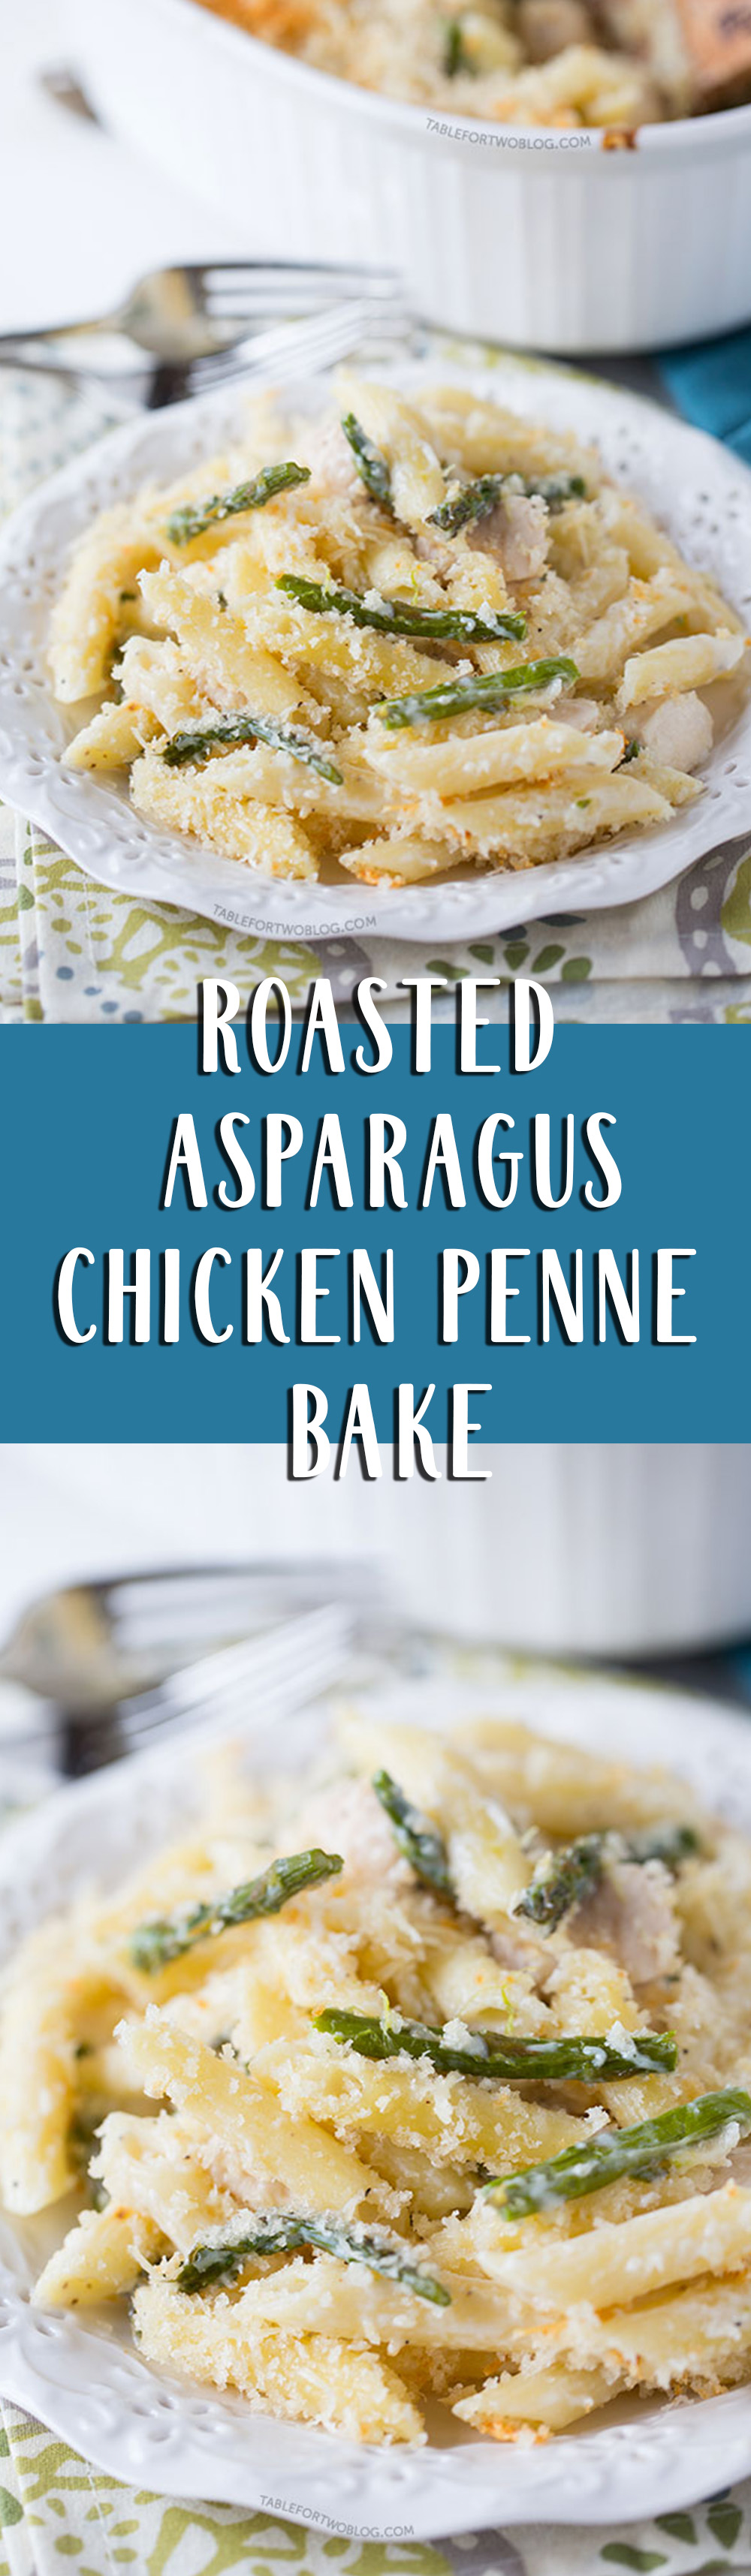 Roasted Asparagus and Chicken Penne Bake - Table for Two® by Julie ...